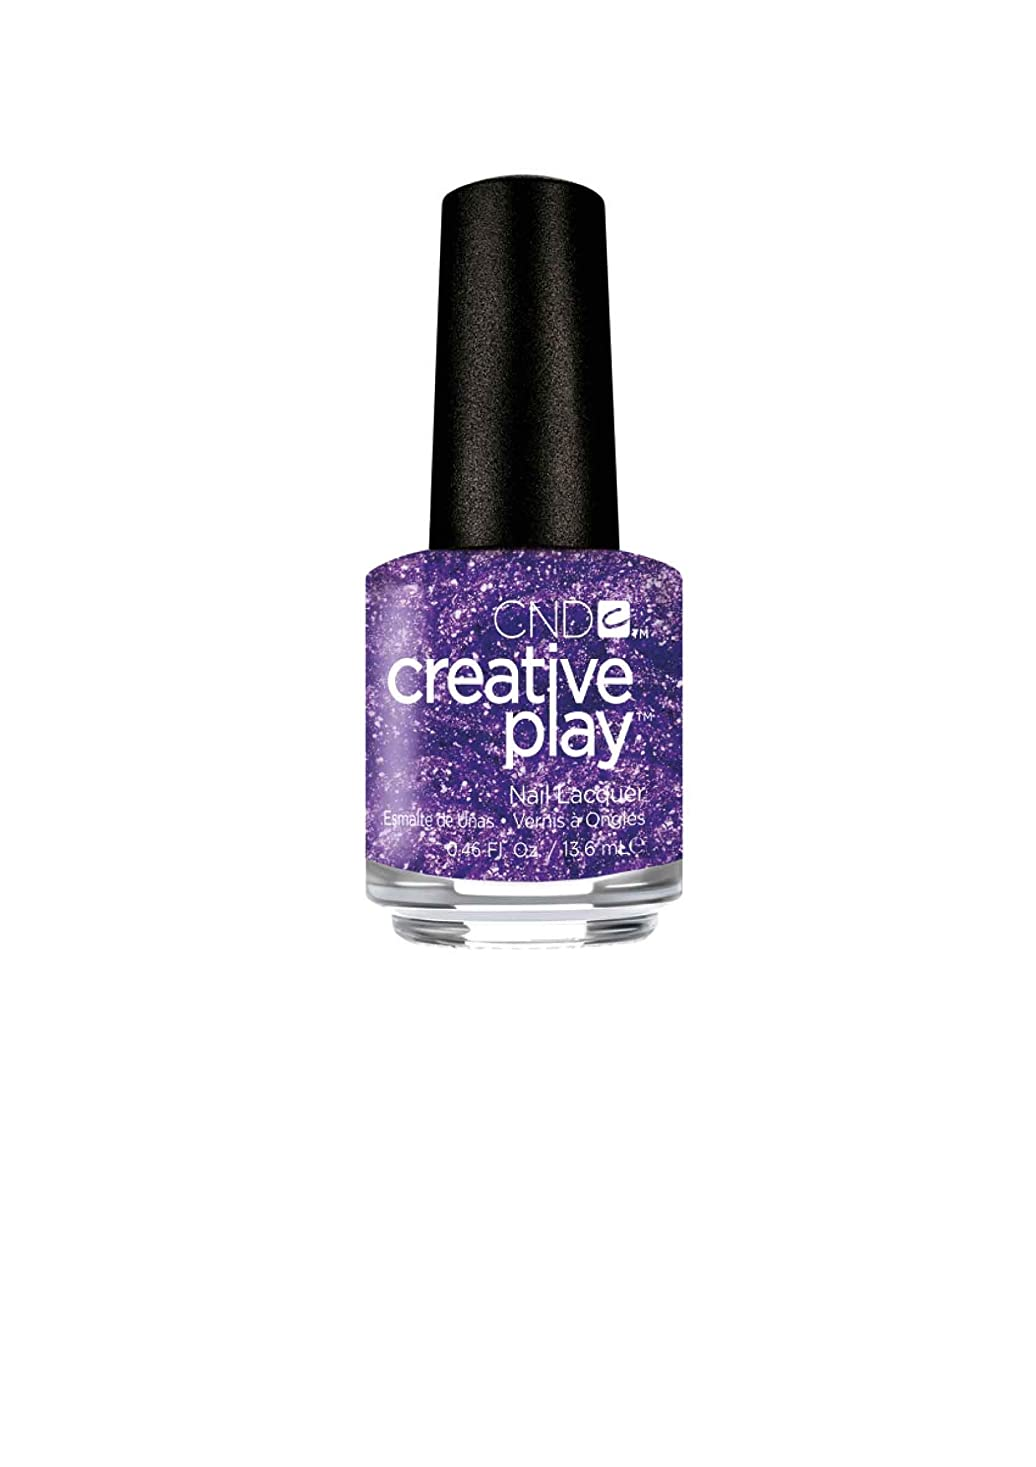 液化するサスティーン好ましいCND Creative Play Lacquer - Miss Purplelarity - 0.46oz / 13.6ml